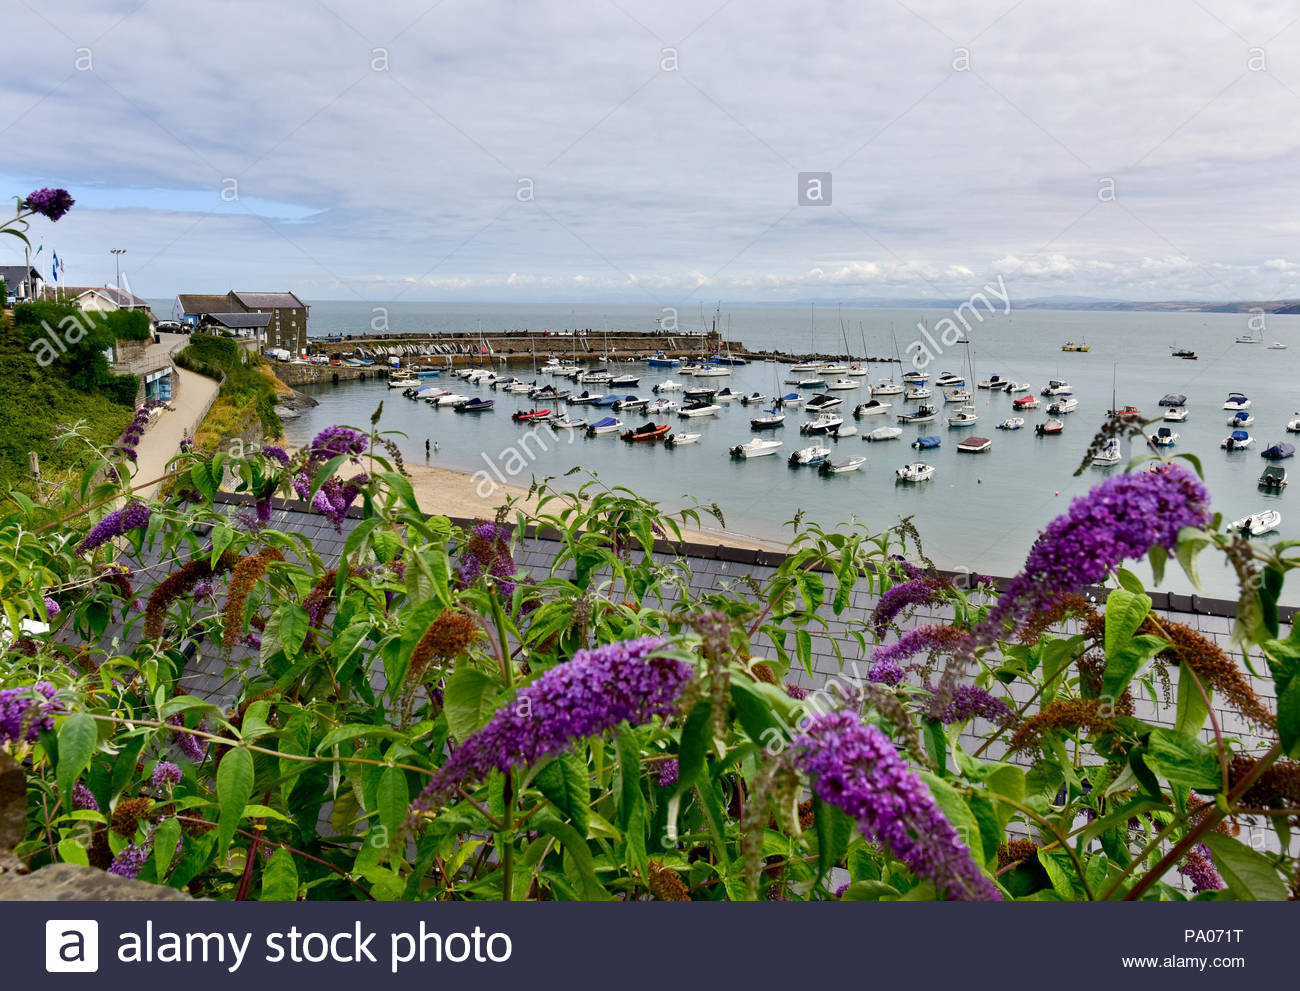 The harbour at New Quay, Ceredigion, Wales, UK - Stock Image